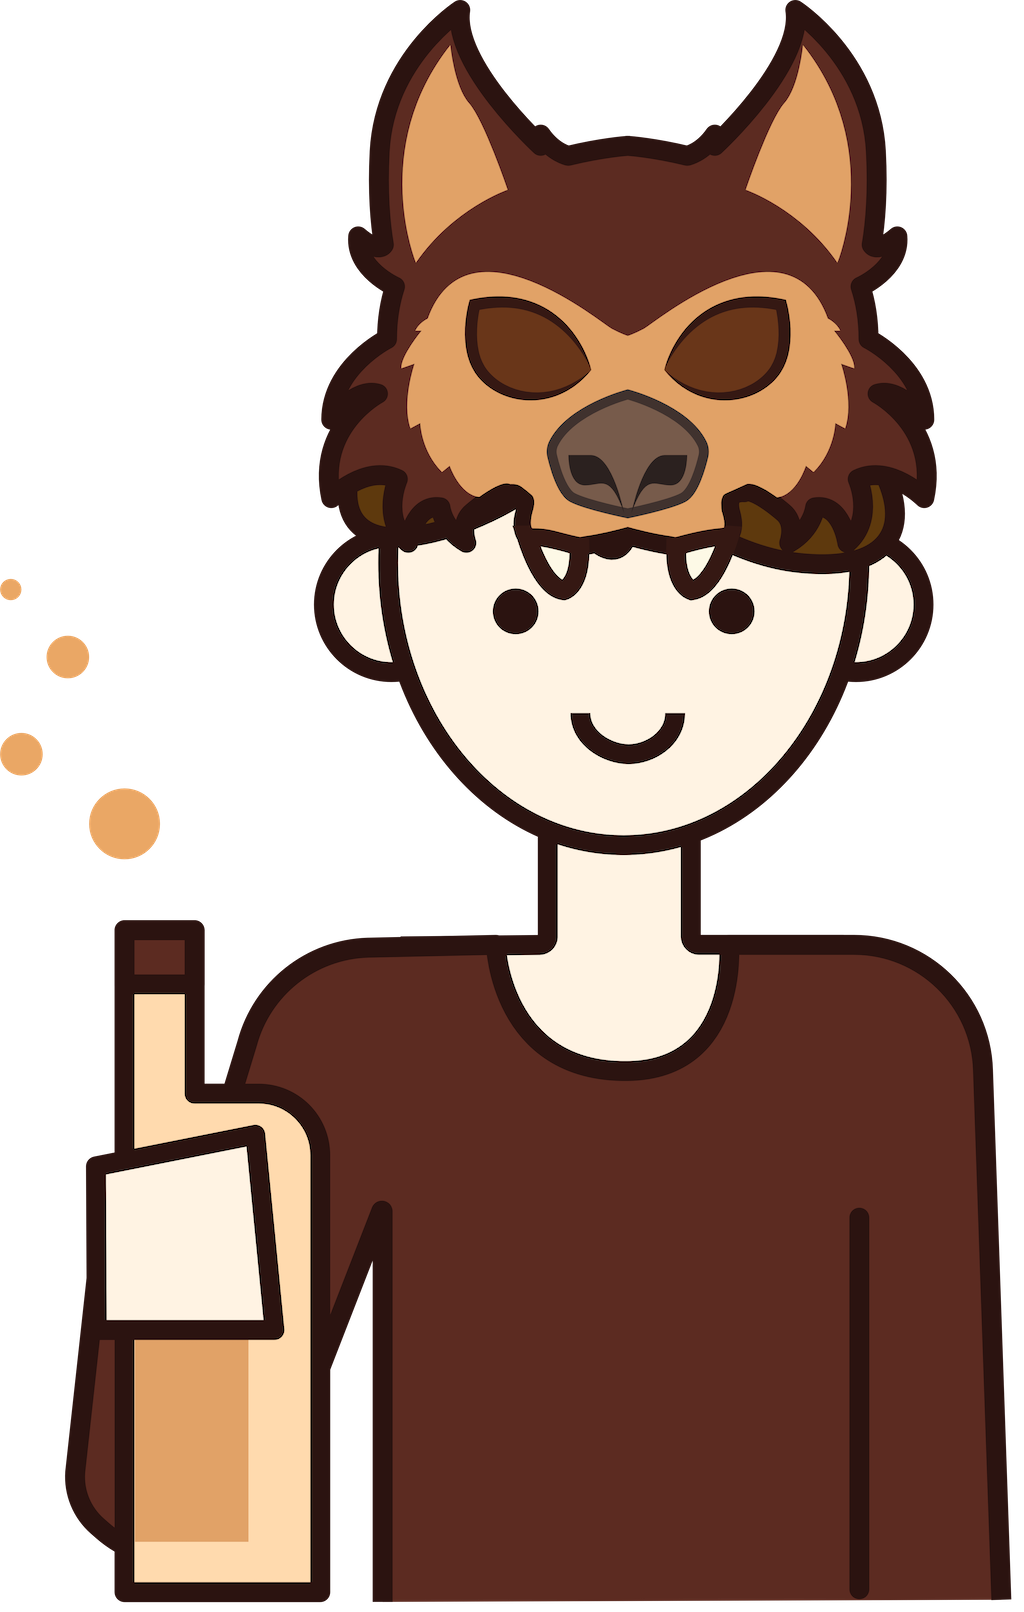 LeetCode - Official Stickers messages sticker-10